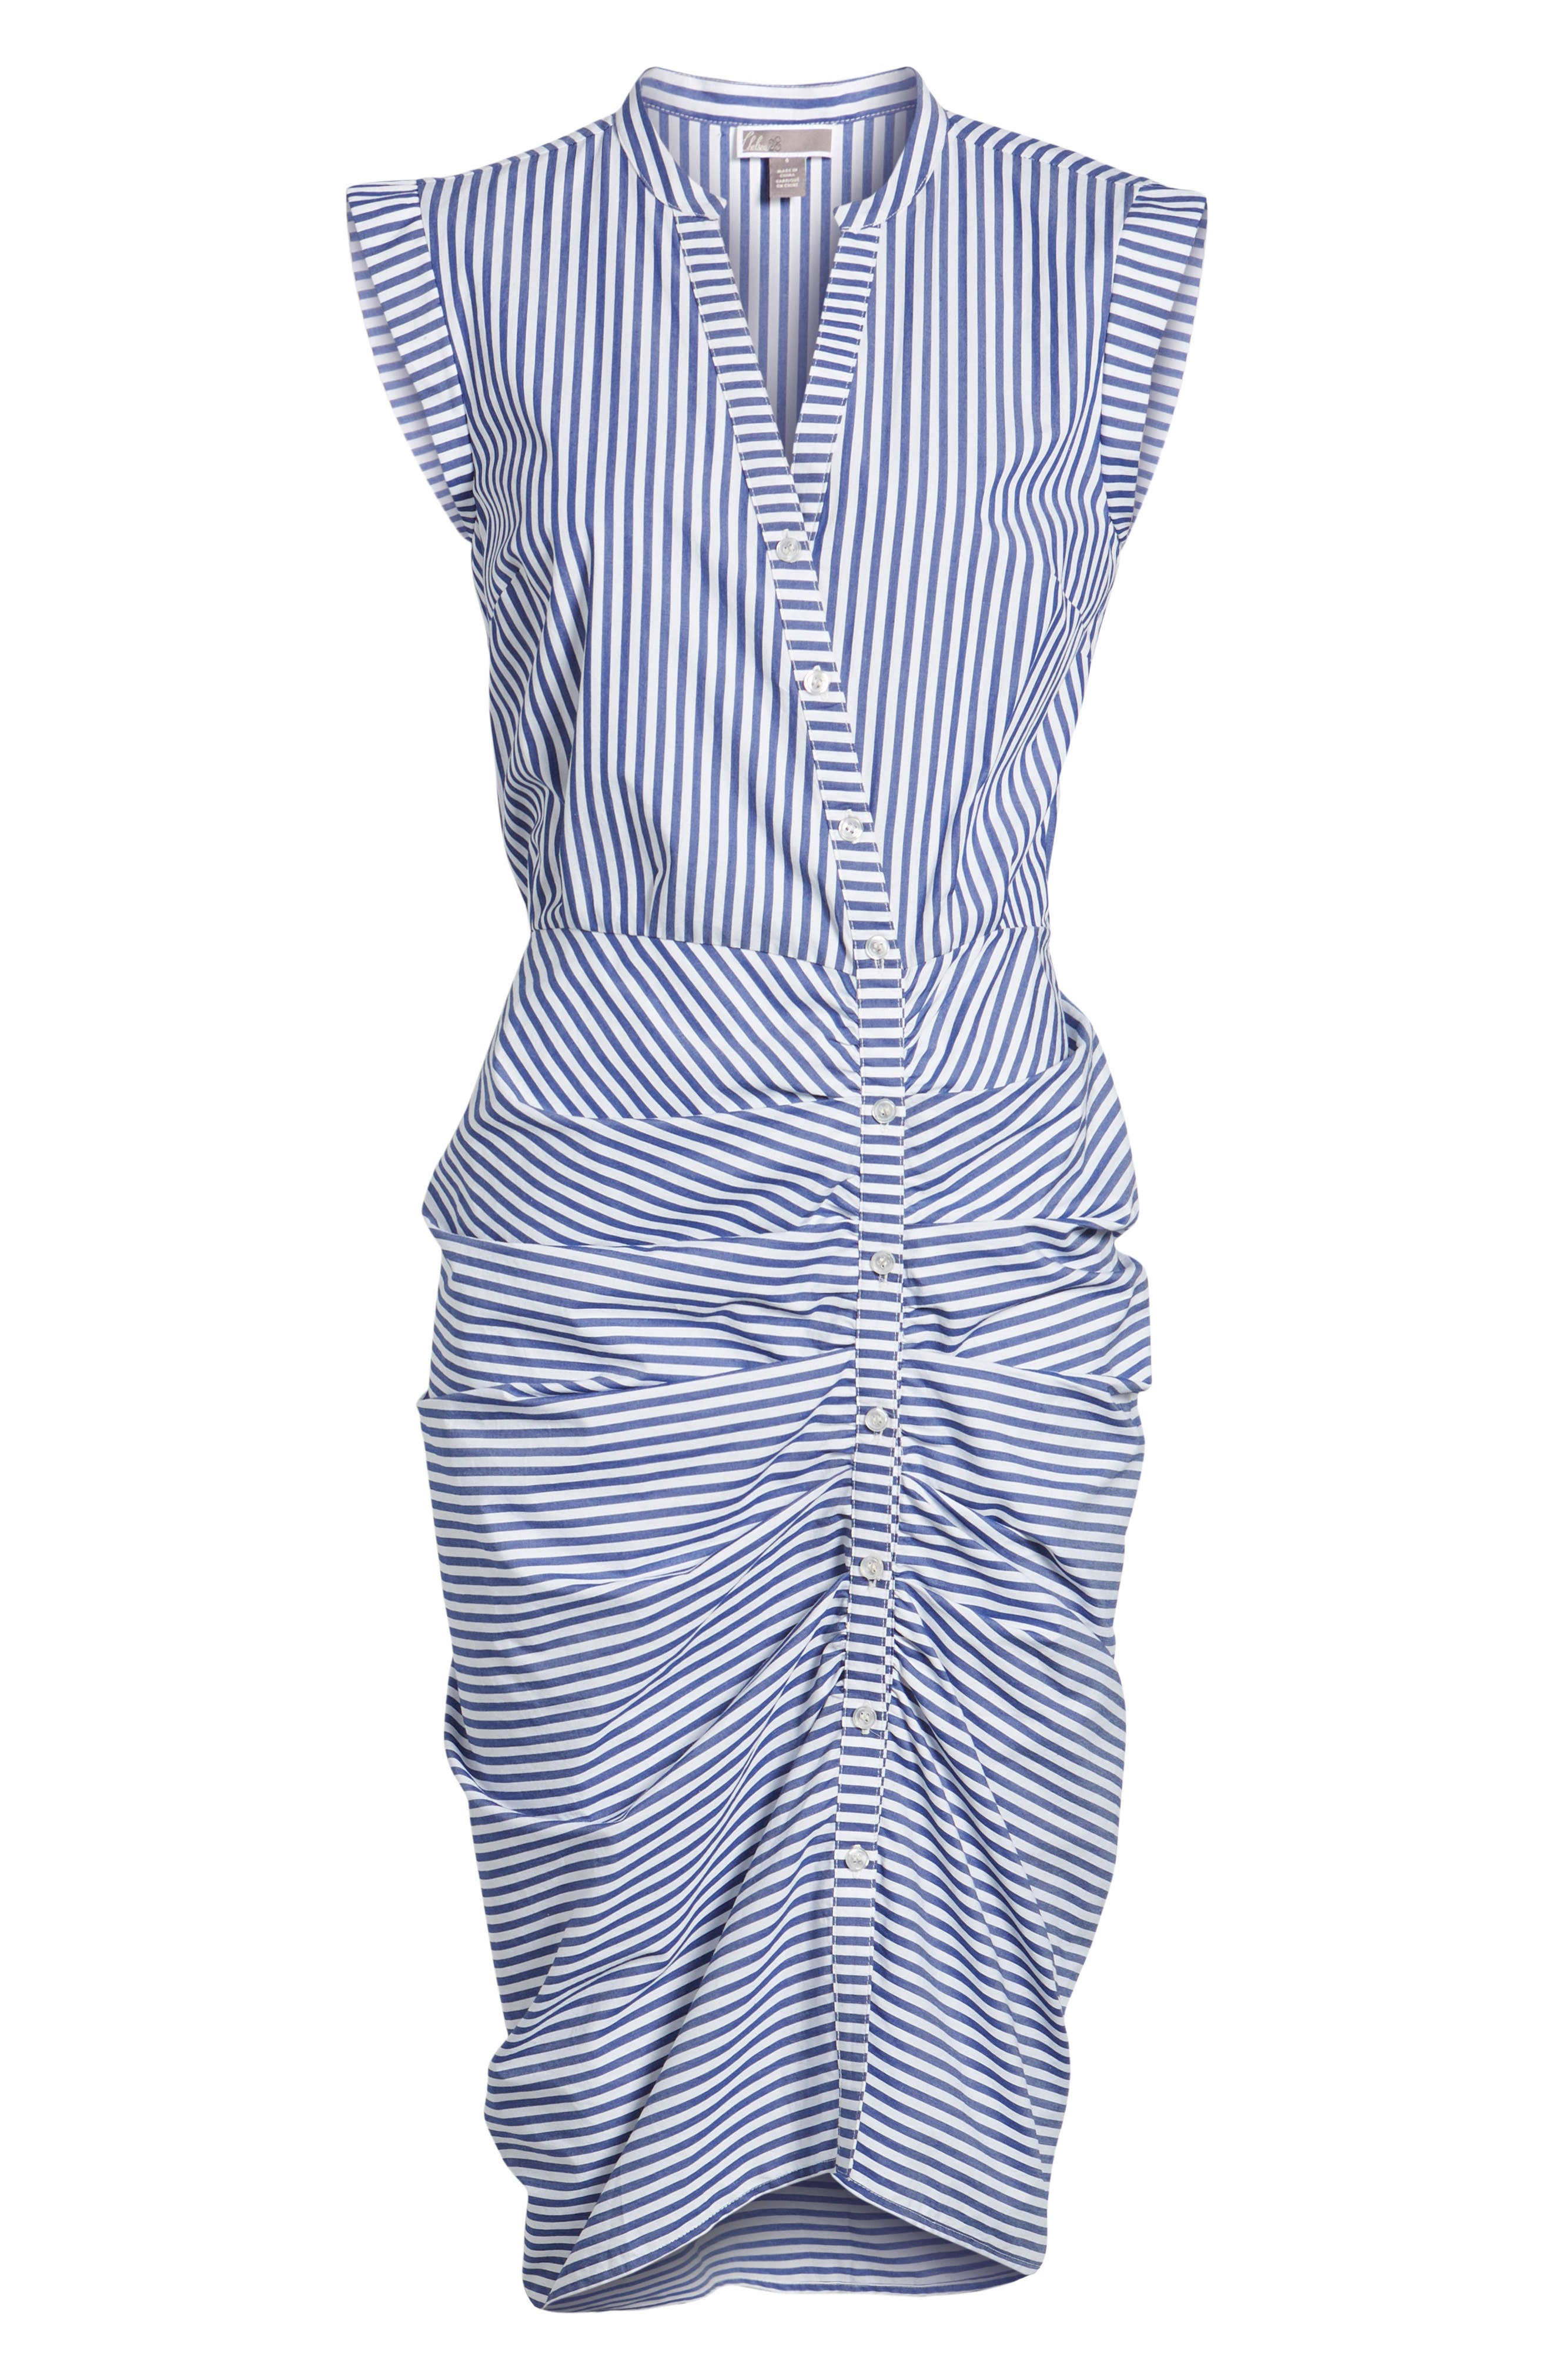 Stripe Ruched Cotton Shirtdress,                             Alternate thumbnail 8, color,                             400